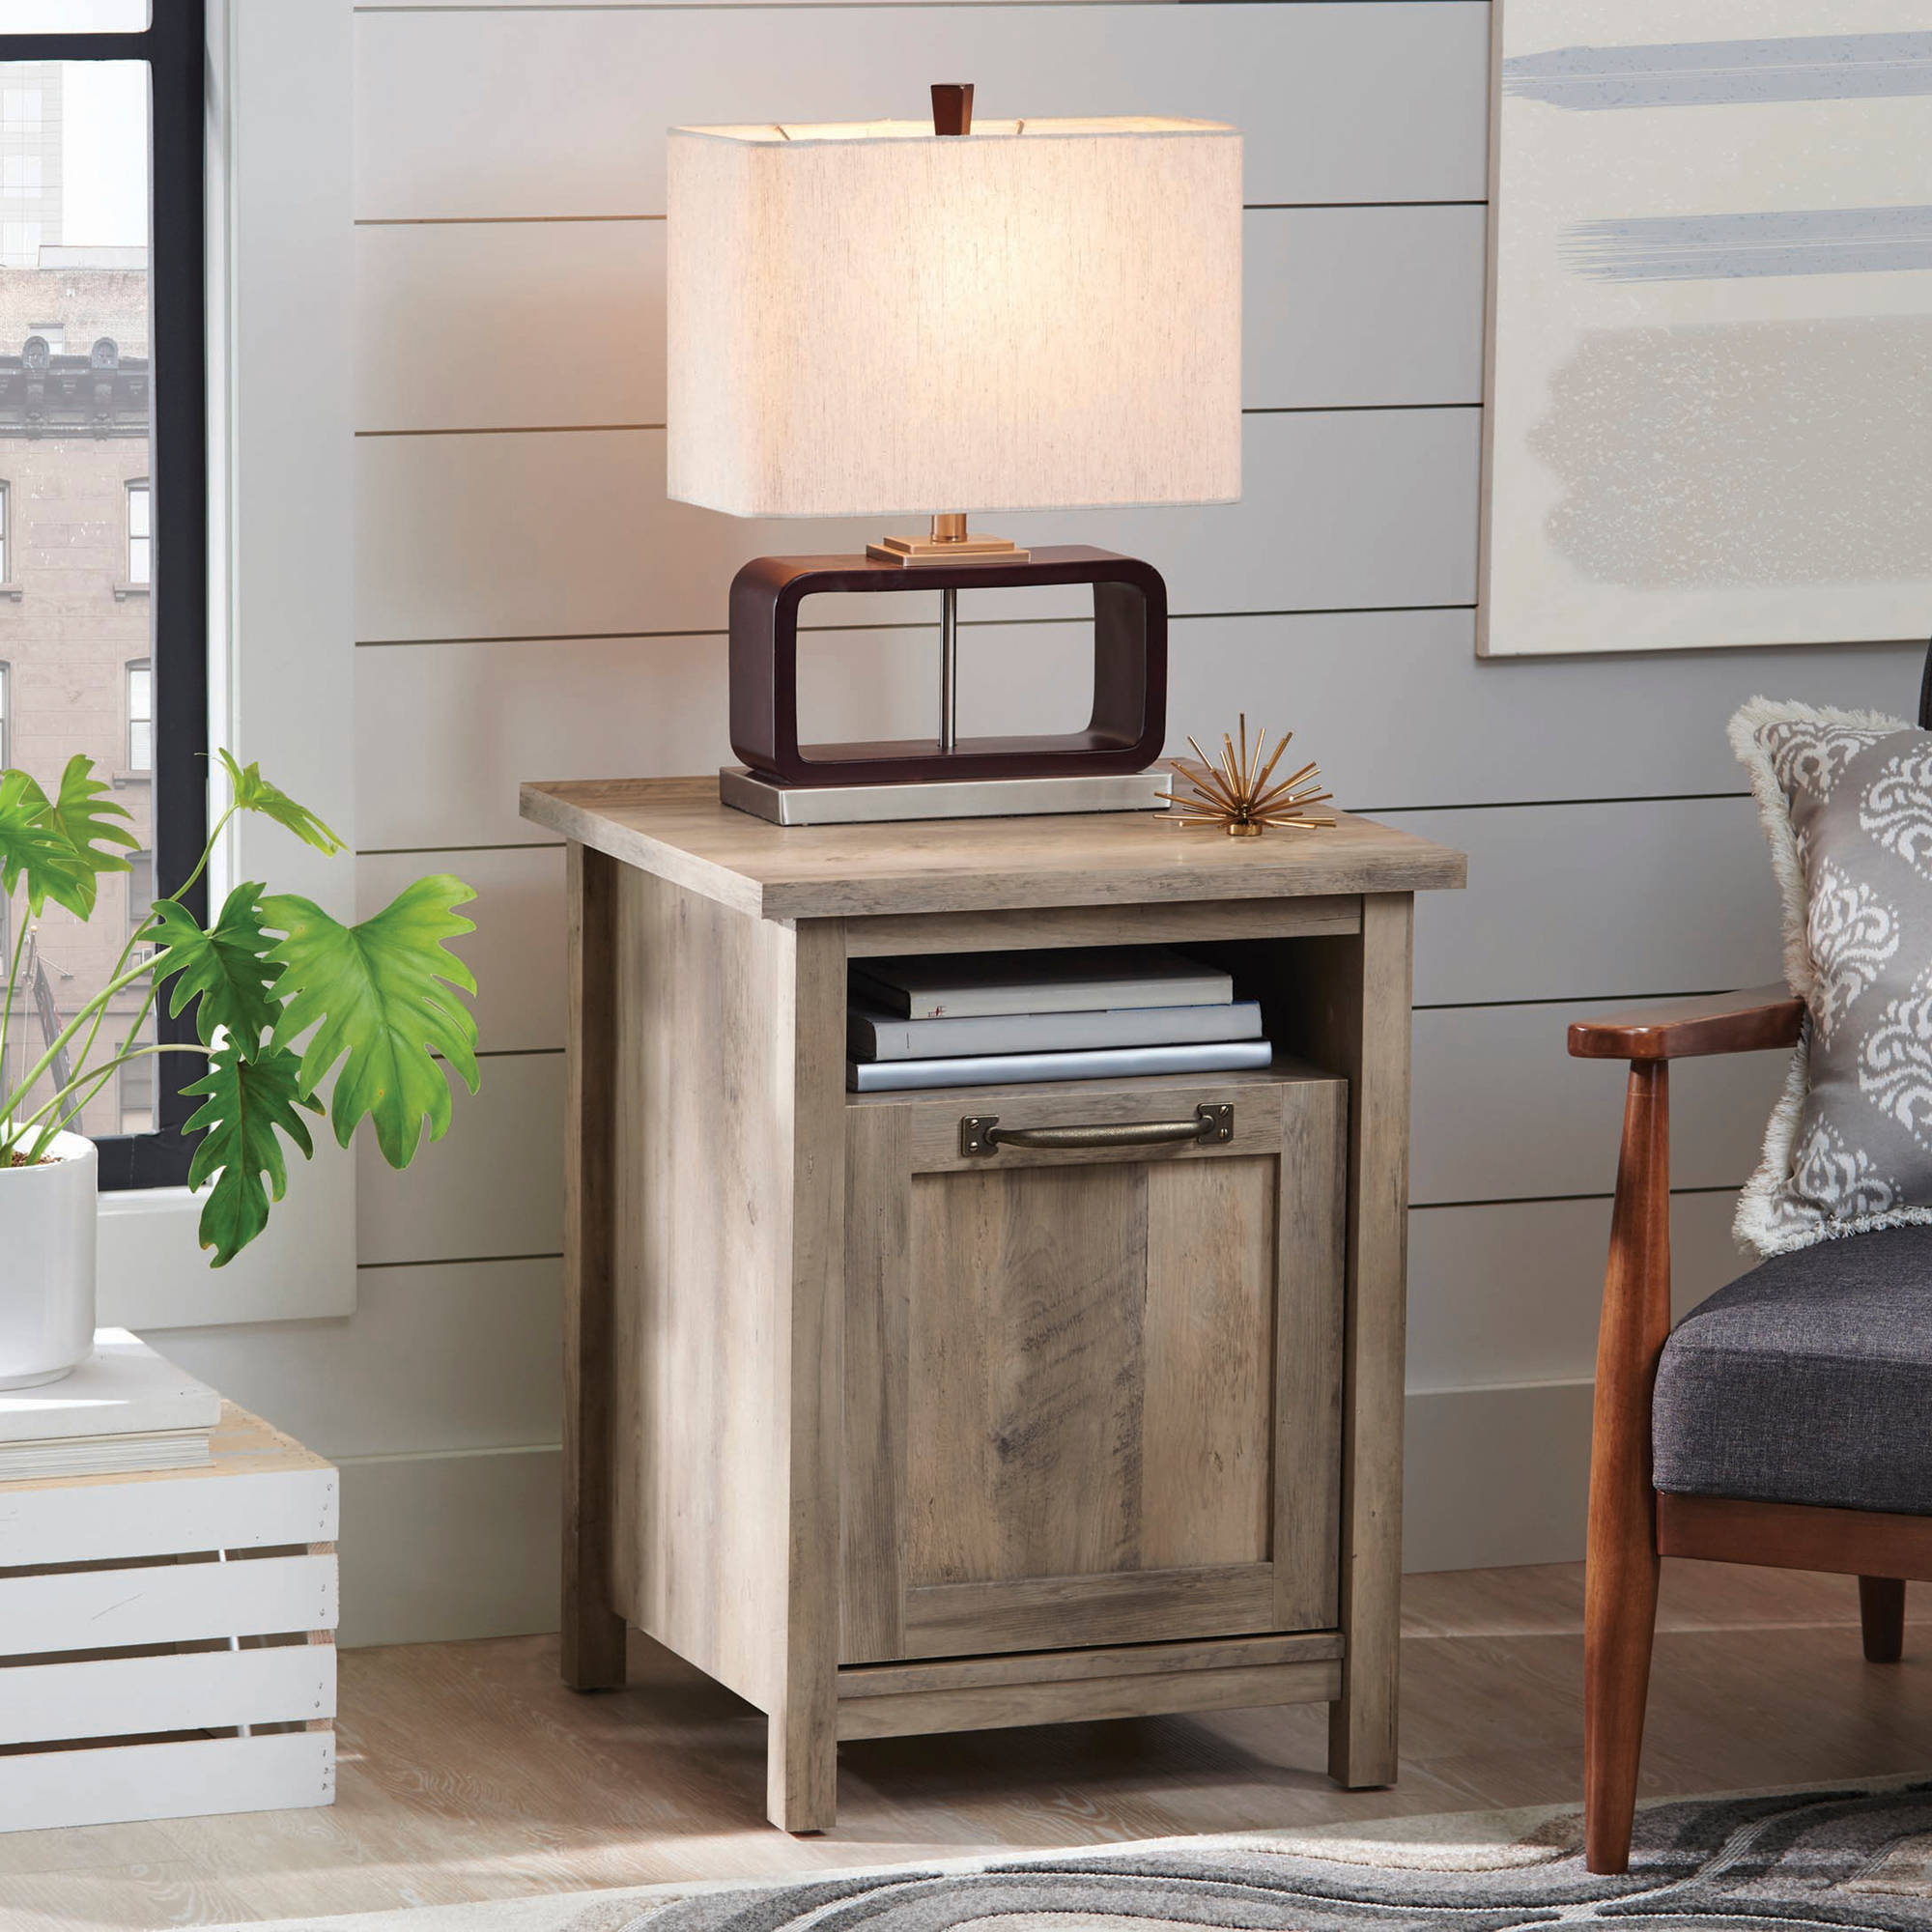 better homes and gardens modern farmhouse side table accent white round tray metal marble glass end tables ikea wooden storage shelves martin home office furniture bar height pub